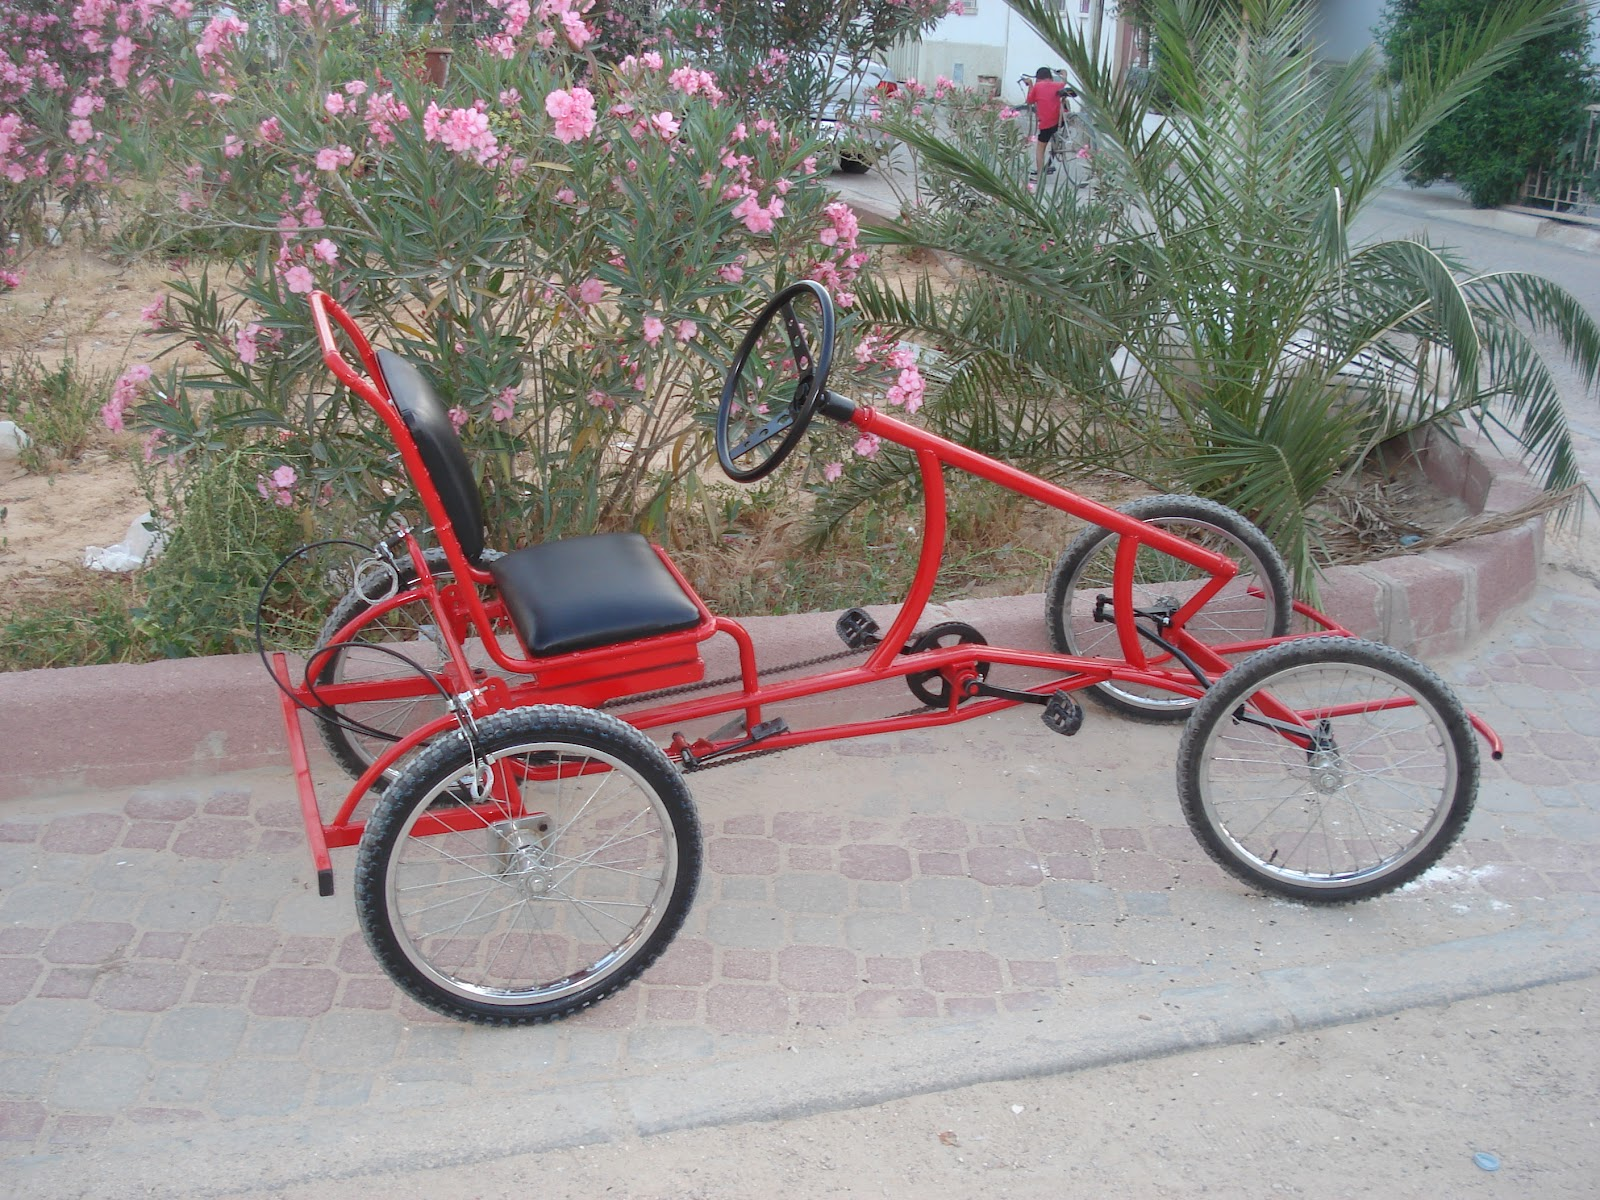 ALASKA VELO: The Rhoades And Other Pedal Cars